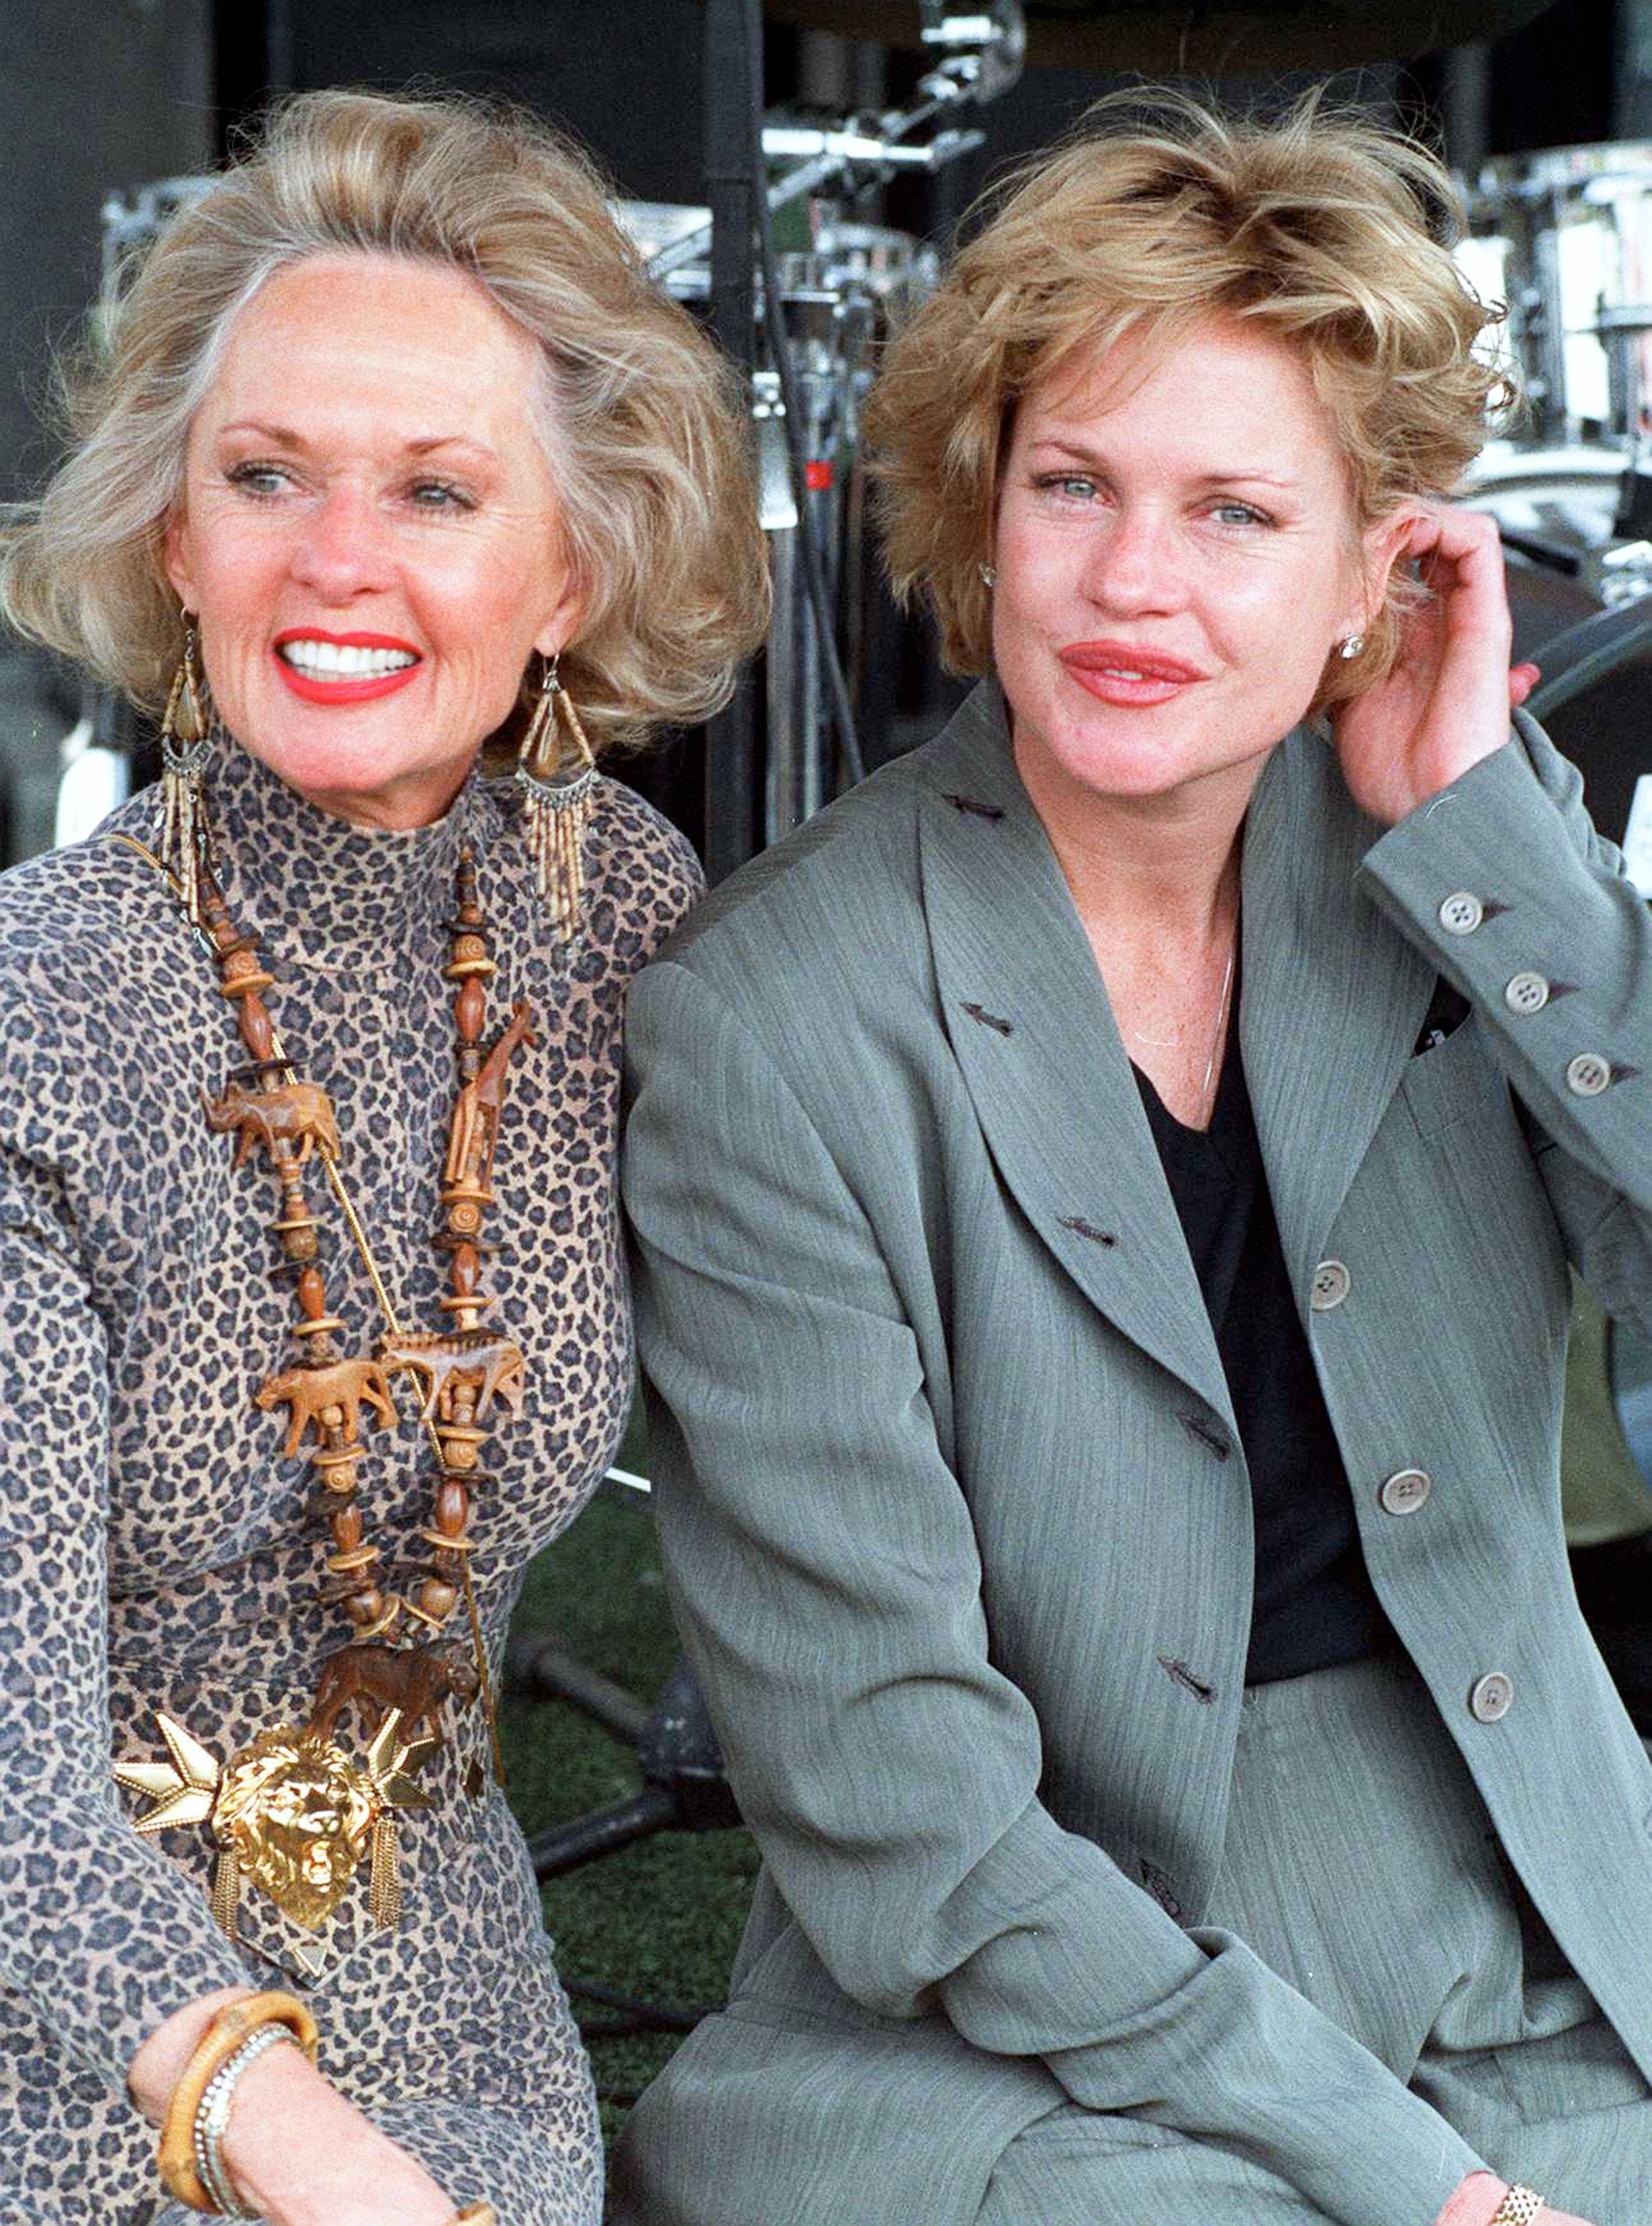 Melanie Griffith and Tippi Hedren, during 'Artists for Shambala' Animal Preservation Benefit - October 30, 1994 in Acton, California, United States. | Photo: Getty Images